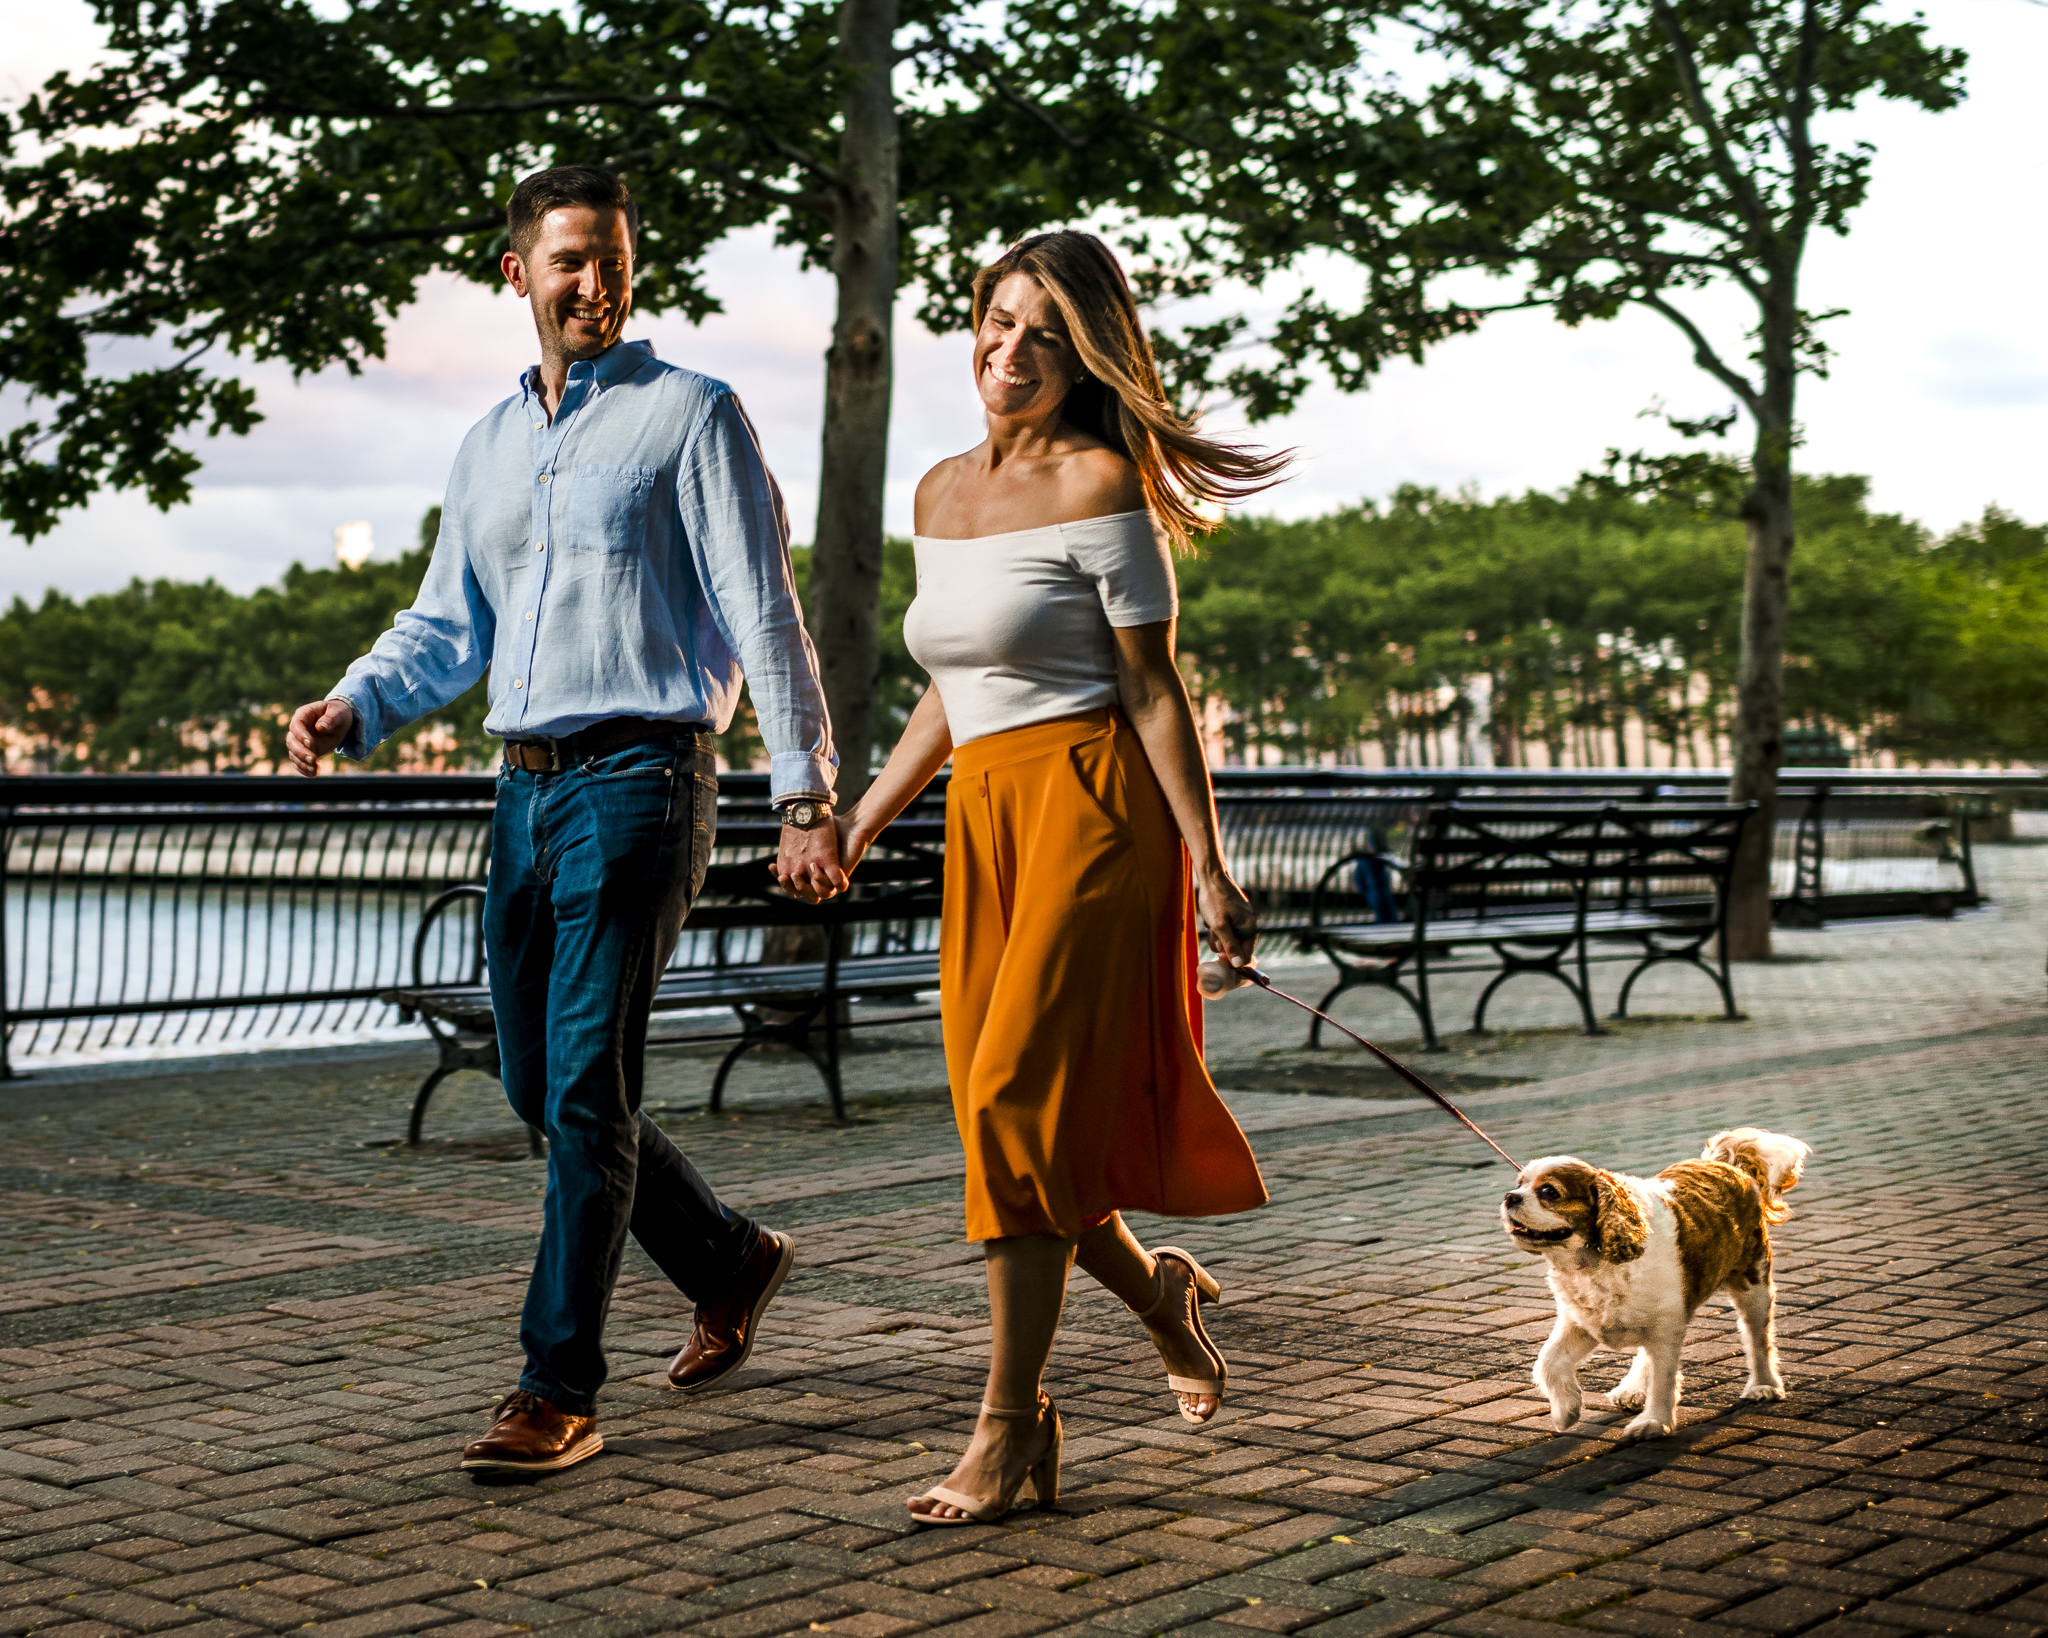 Flanagan-Pier-Hoboken-Engagement-Photos-NYC-Photographer-17.JPG